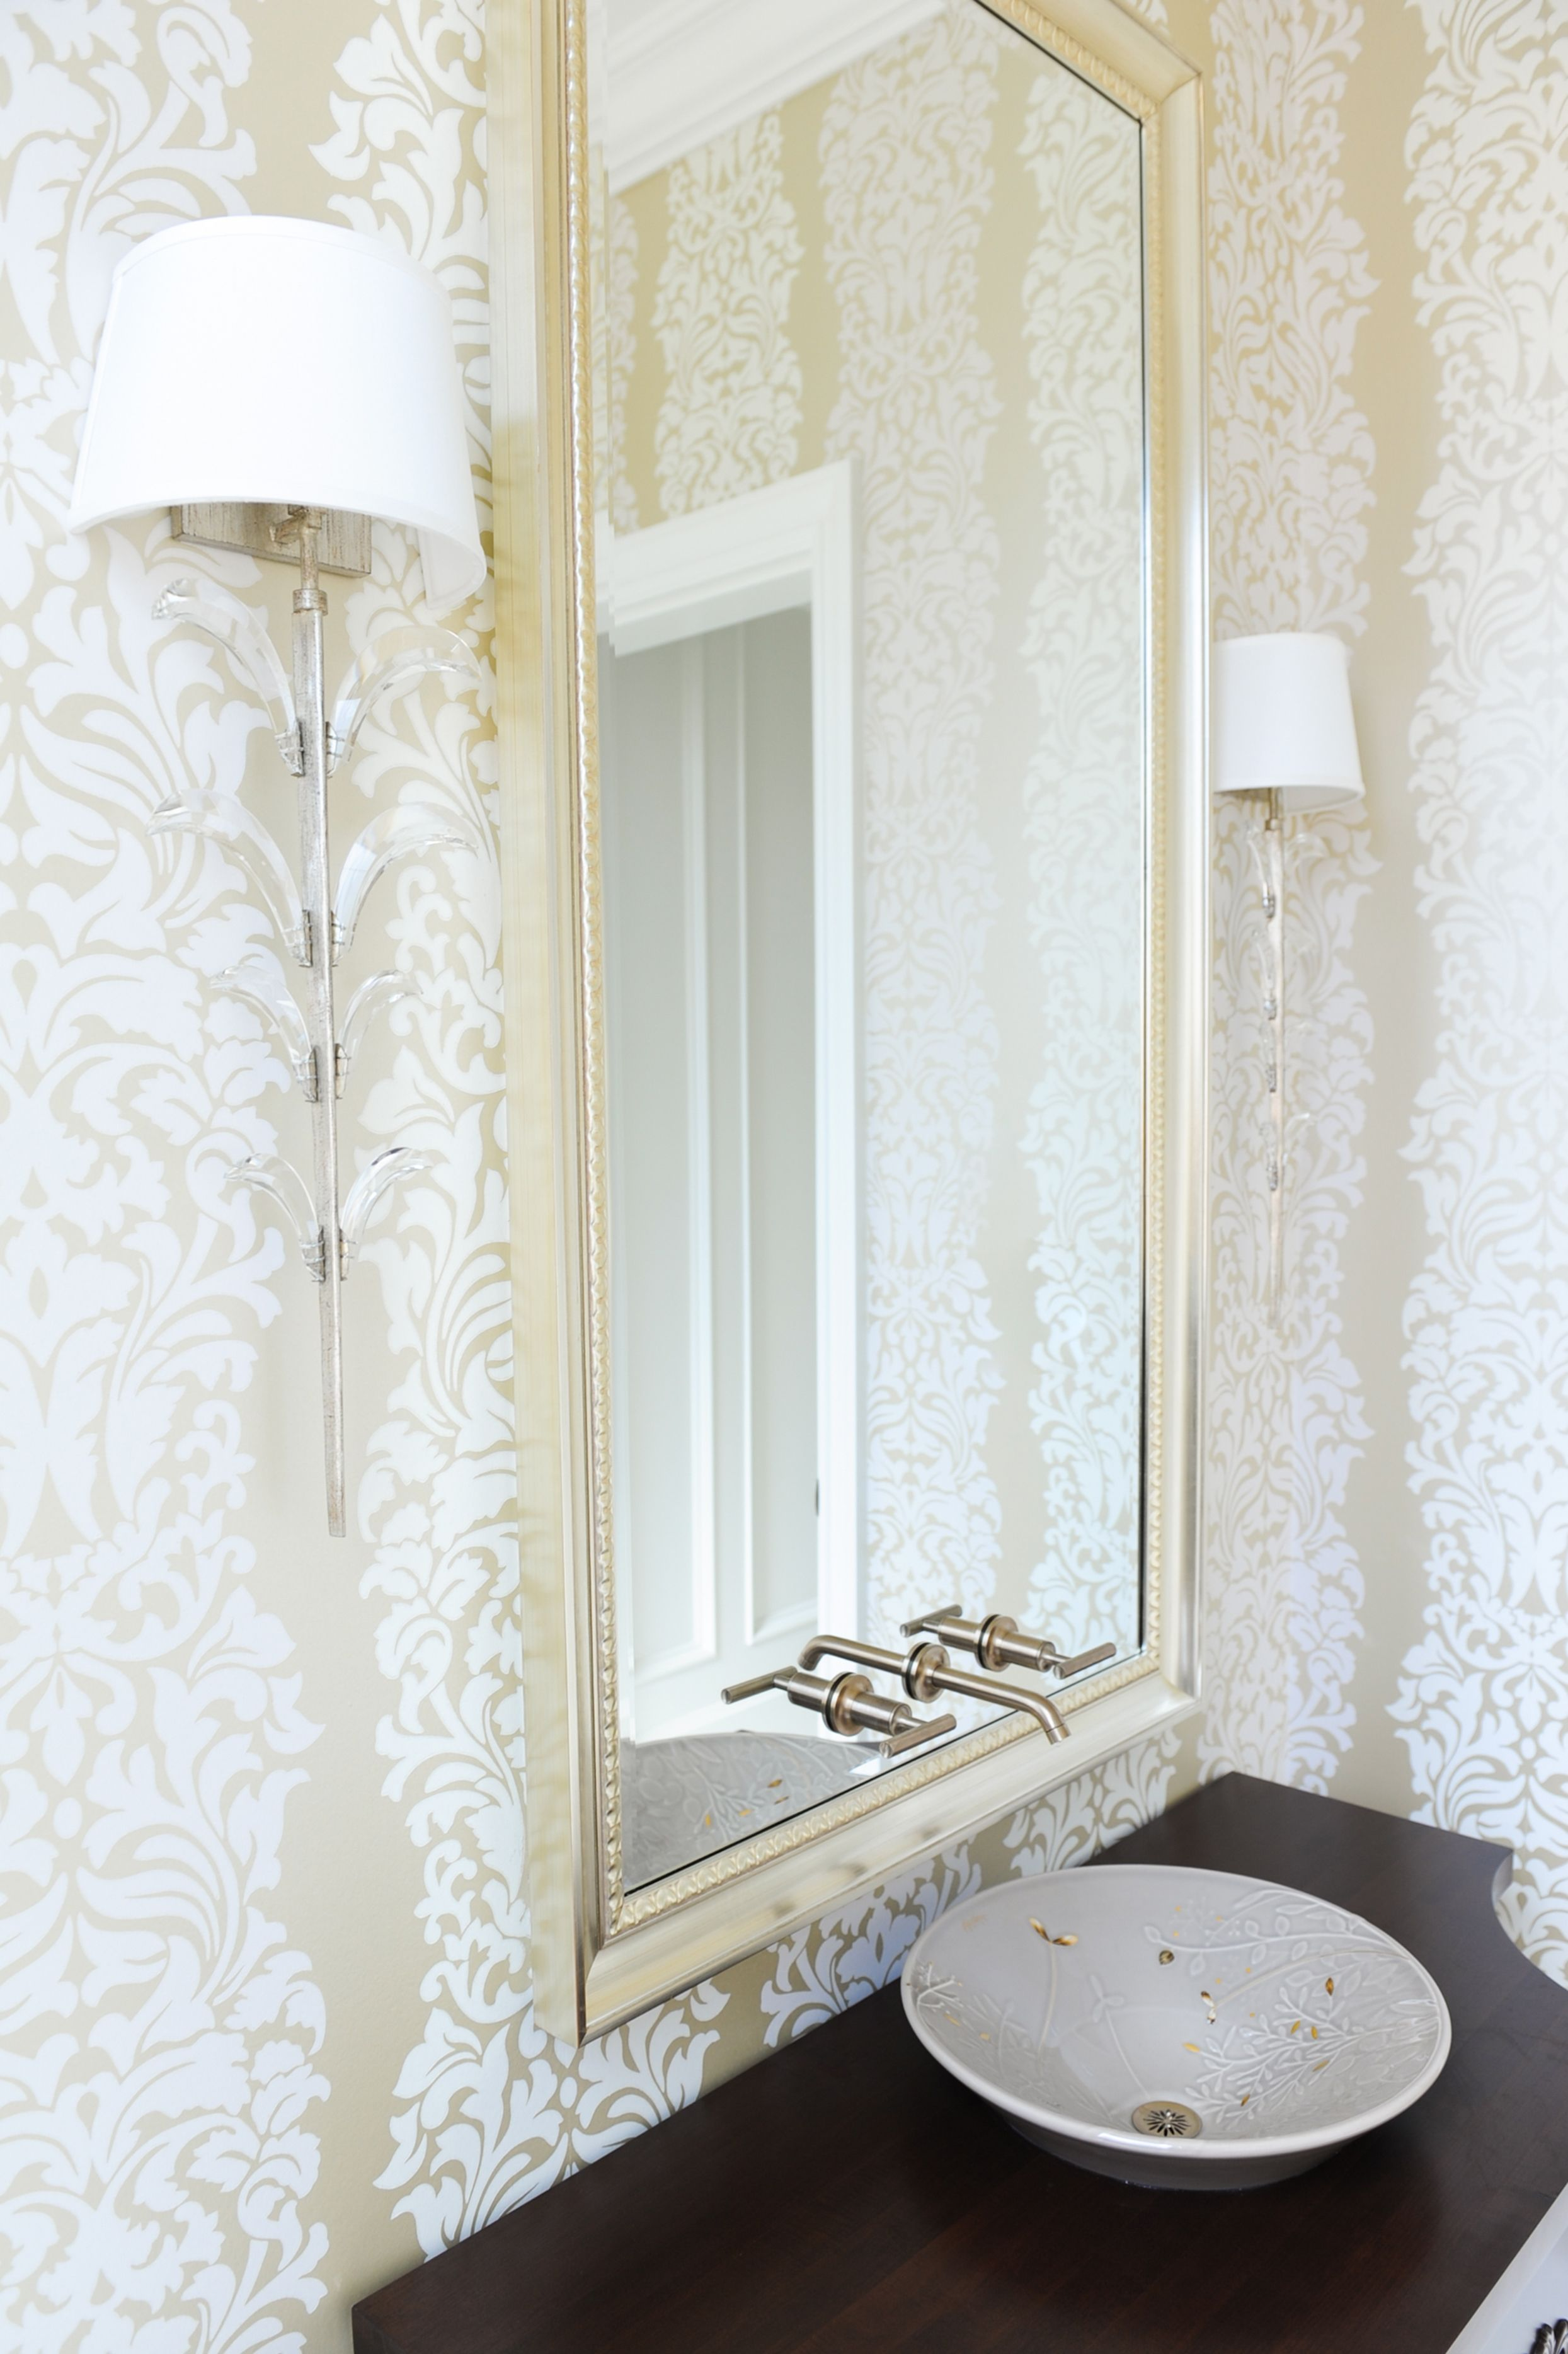 Powder Room designed by Enviable Designs Beautiful wall paper with